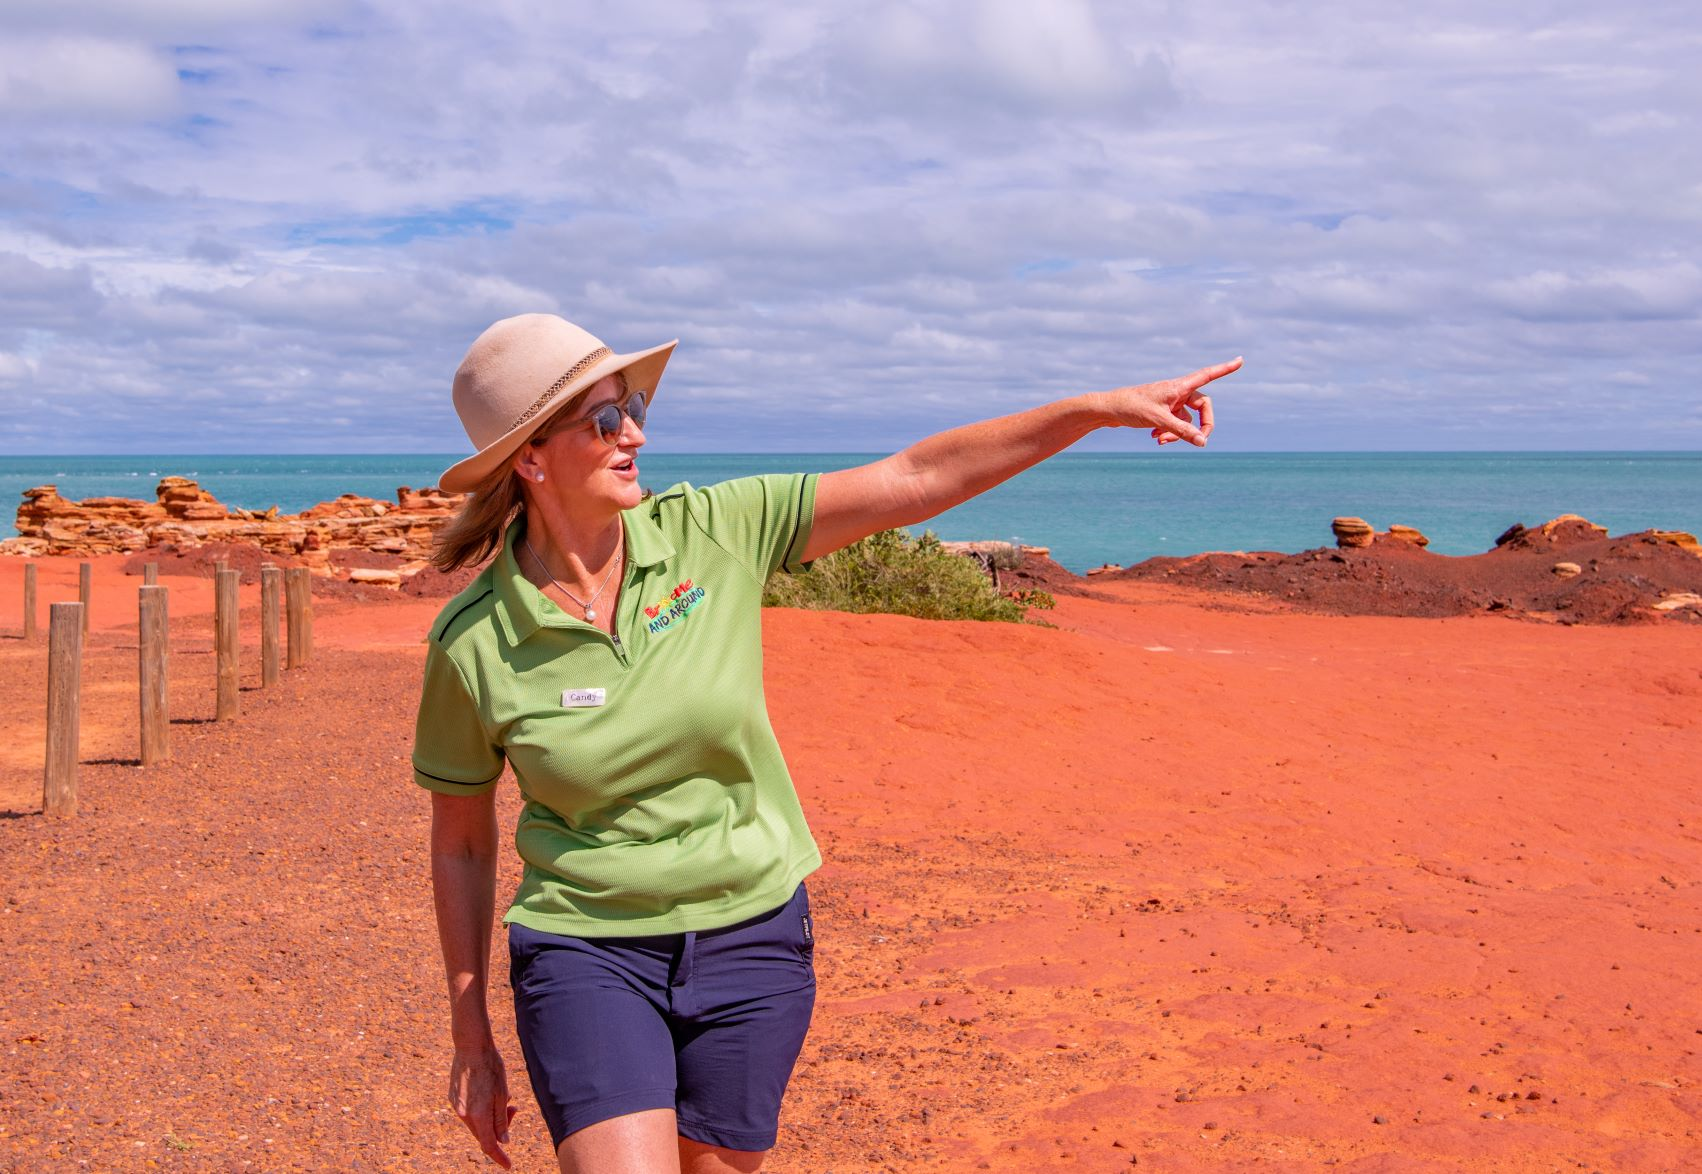 Broome Panoramic Town Tour - Best of Broome sights, culture and history